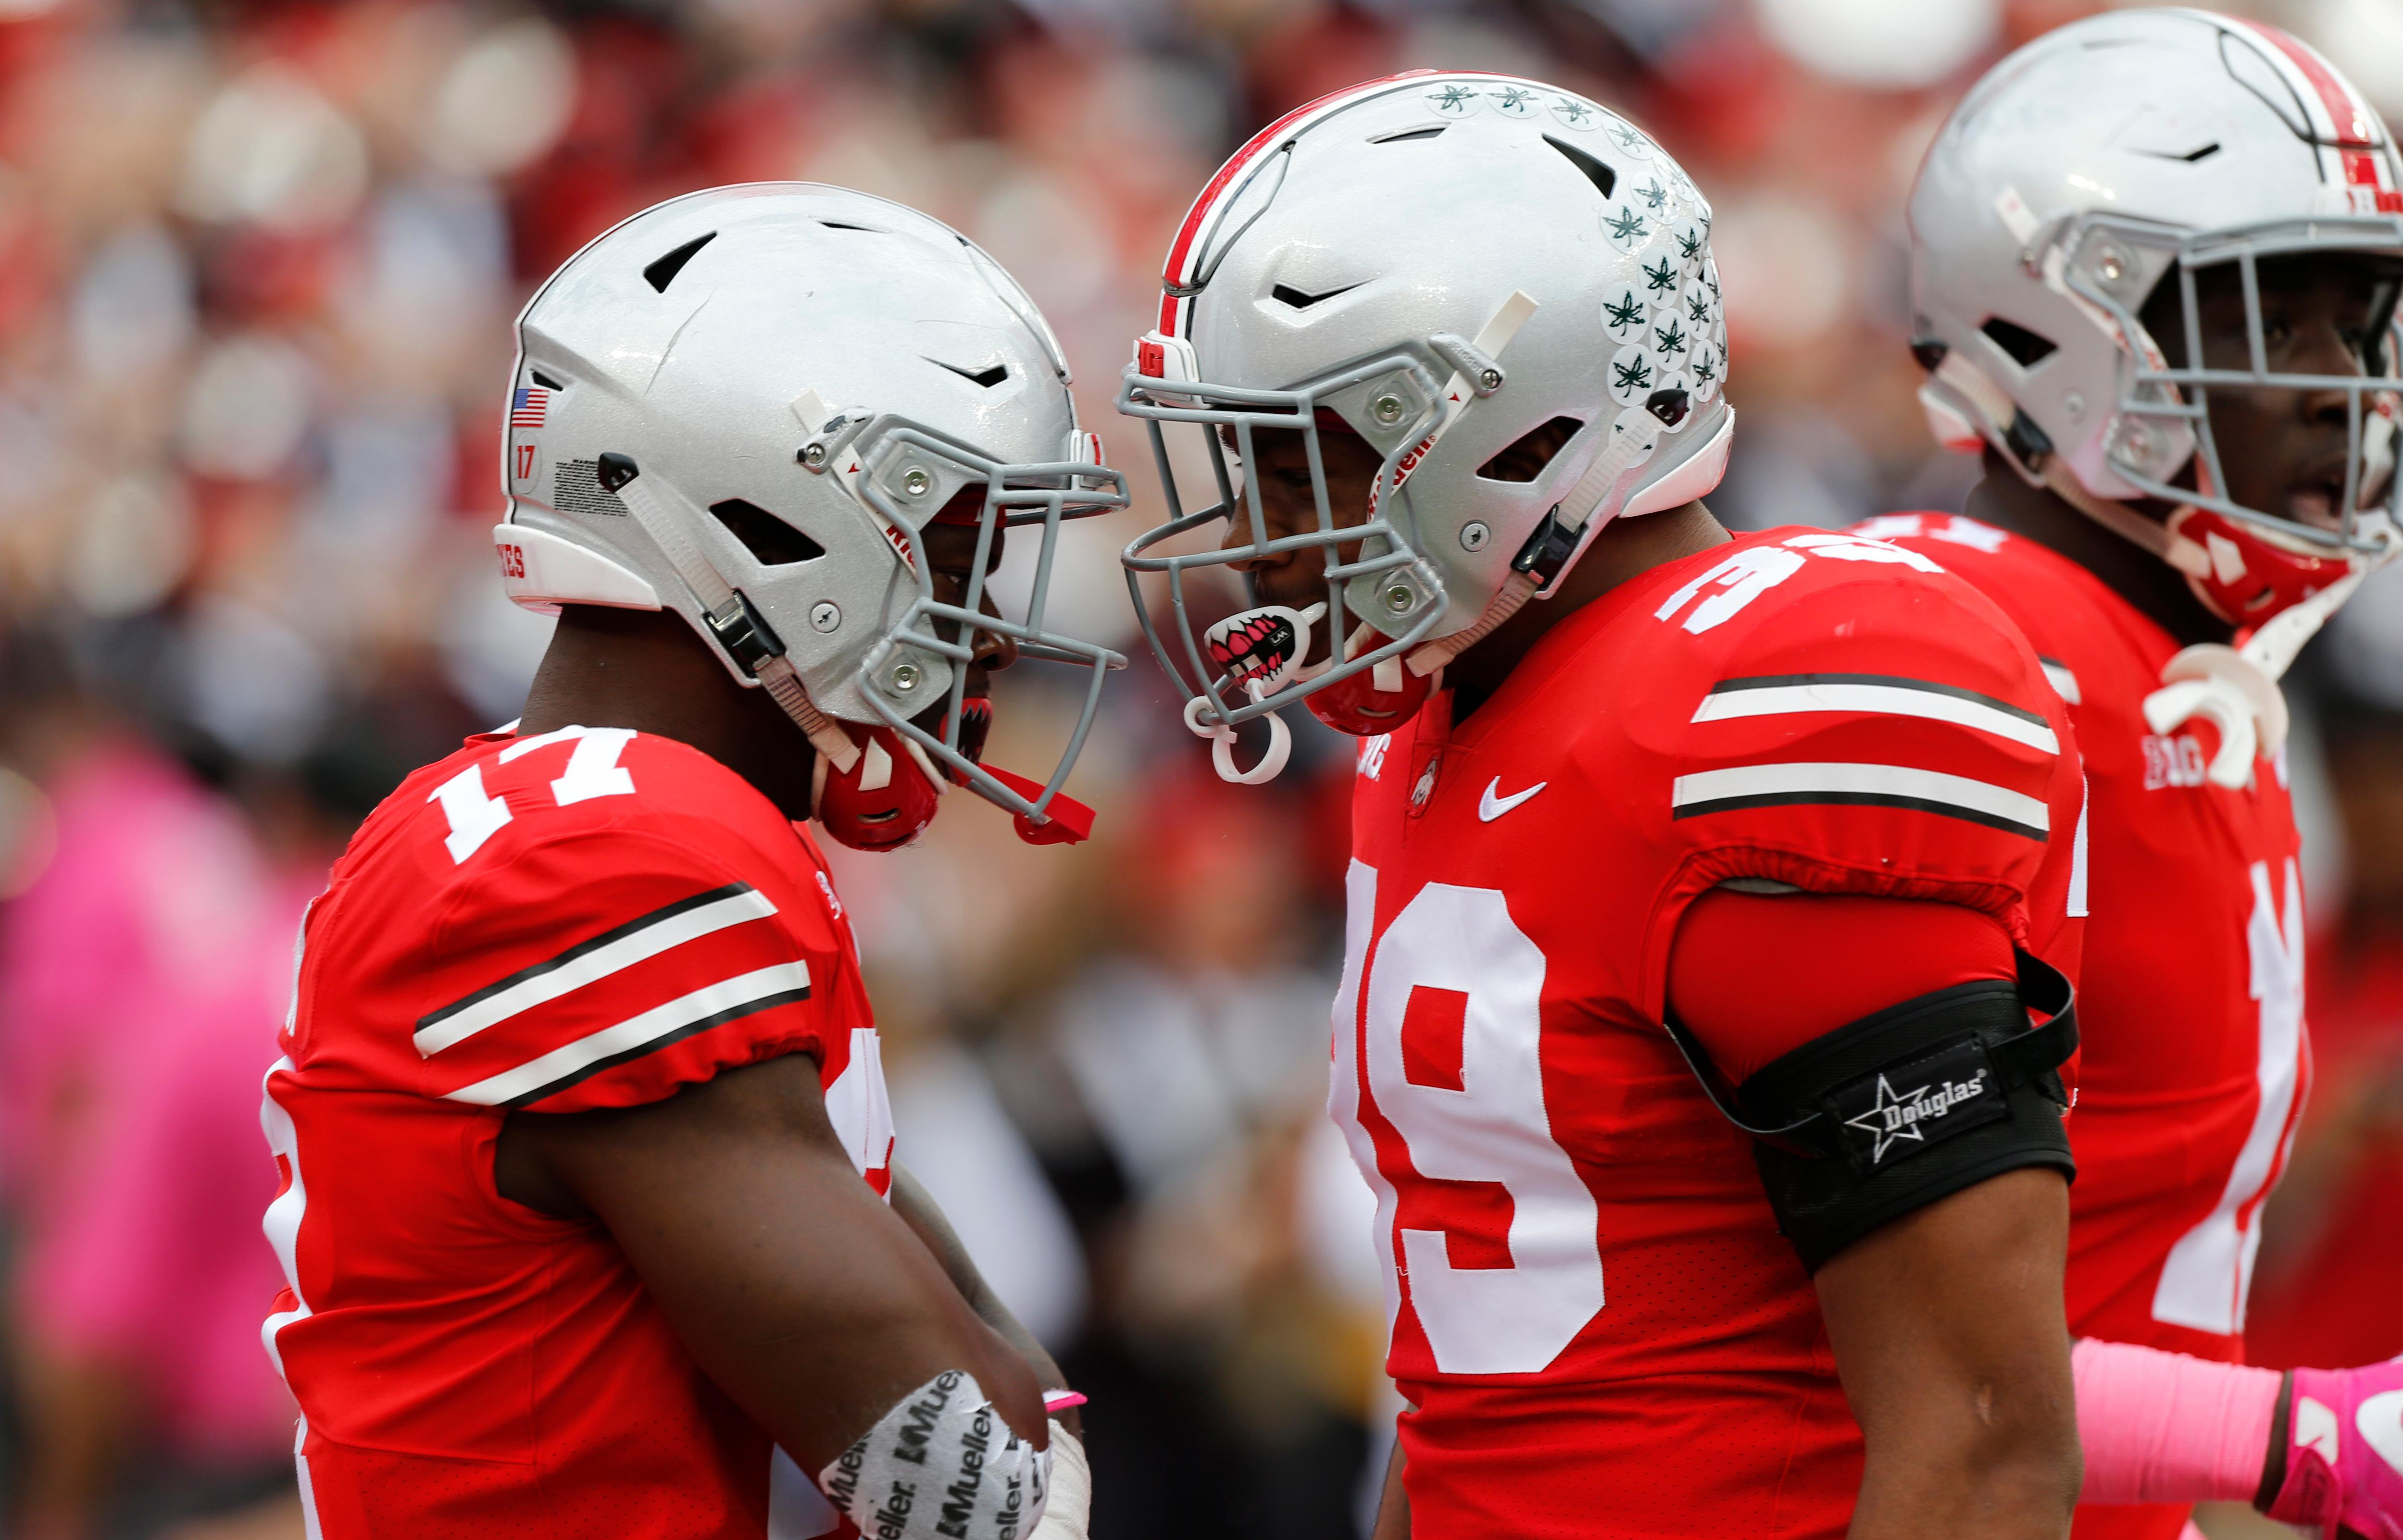 Ohio State linebacker Jerome Baker, left, celebrates recovering a fumble against Maryland with teammate linebacker Malik Harrison during the first half of an NCAA college football game Saturday, Oct. 7, 2017, in Columbus, Ohio. (AP Photo/Jay LaPrete)